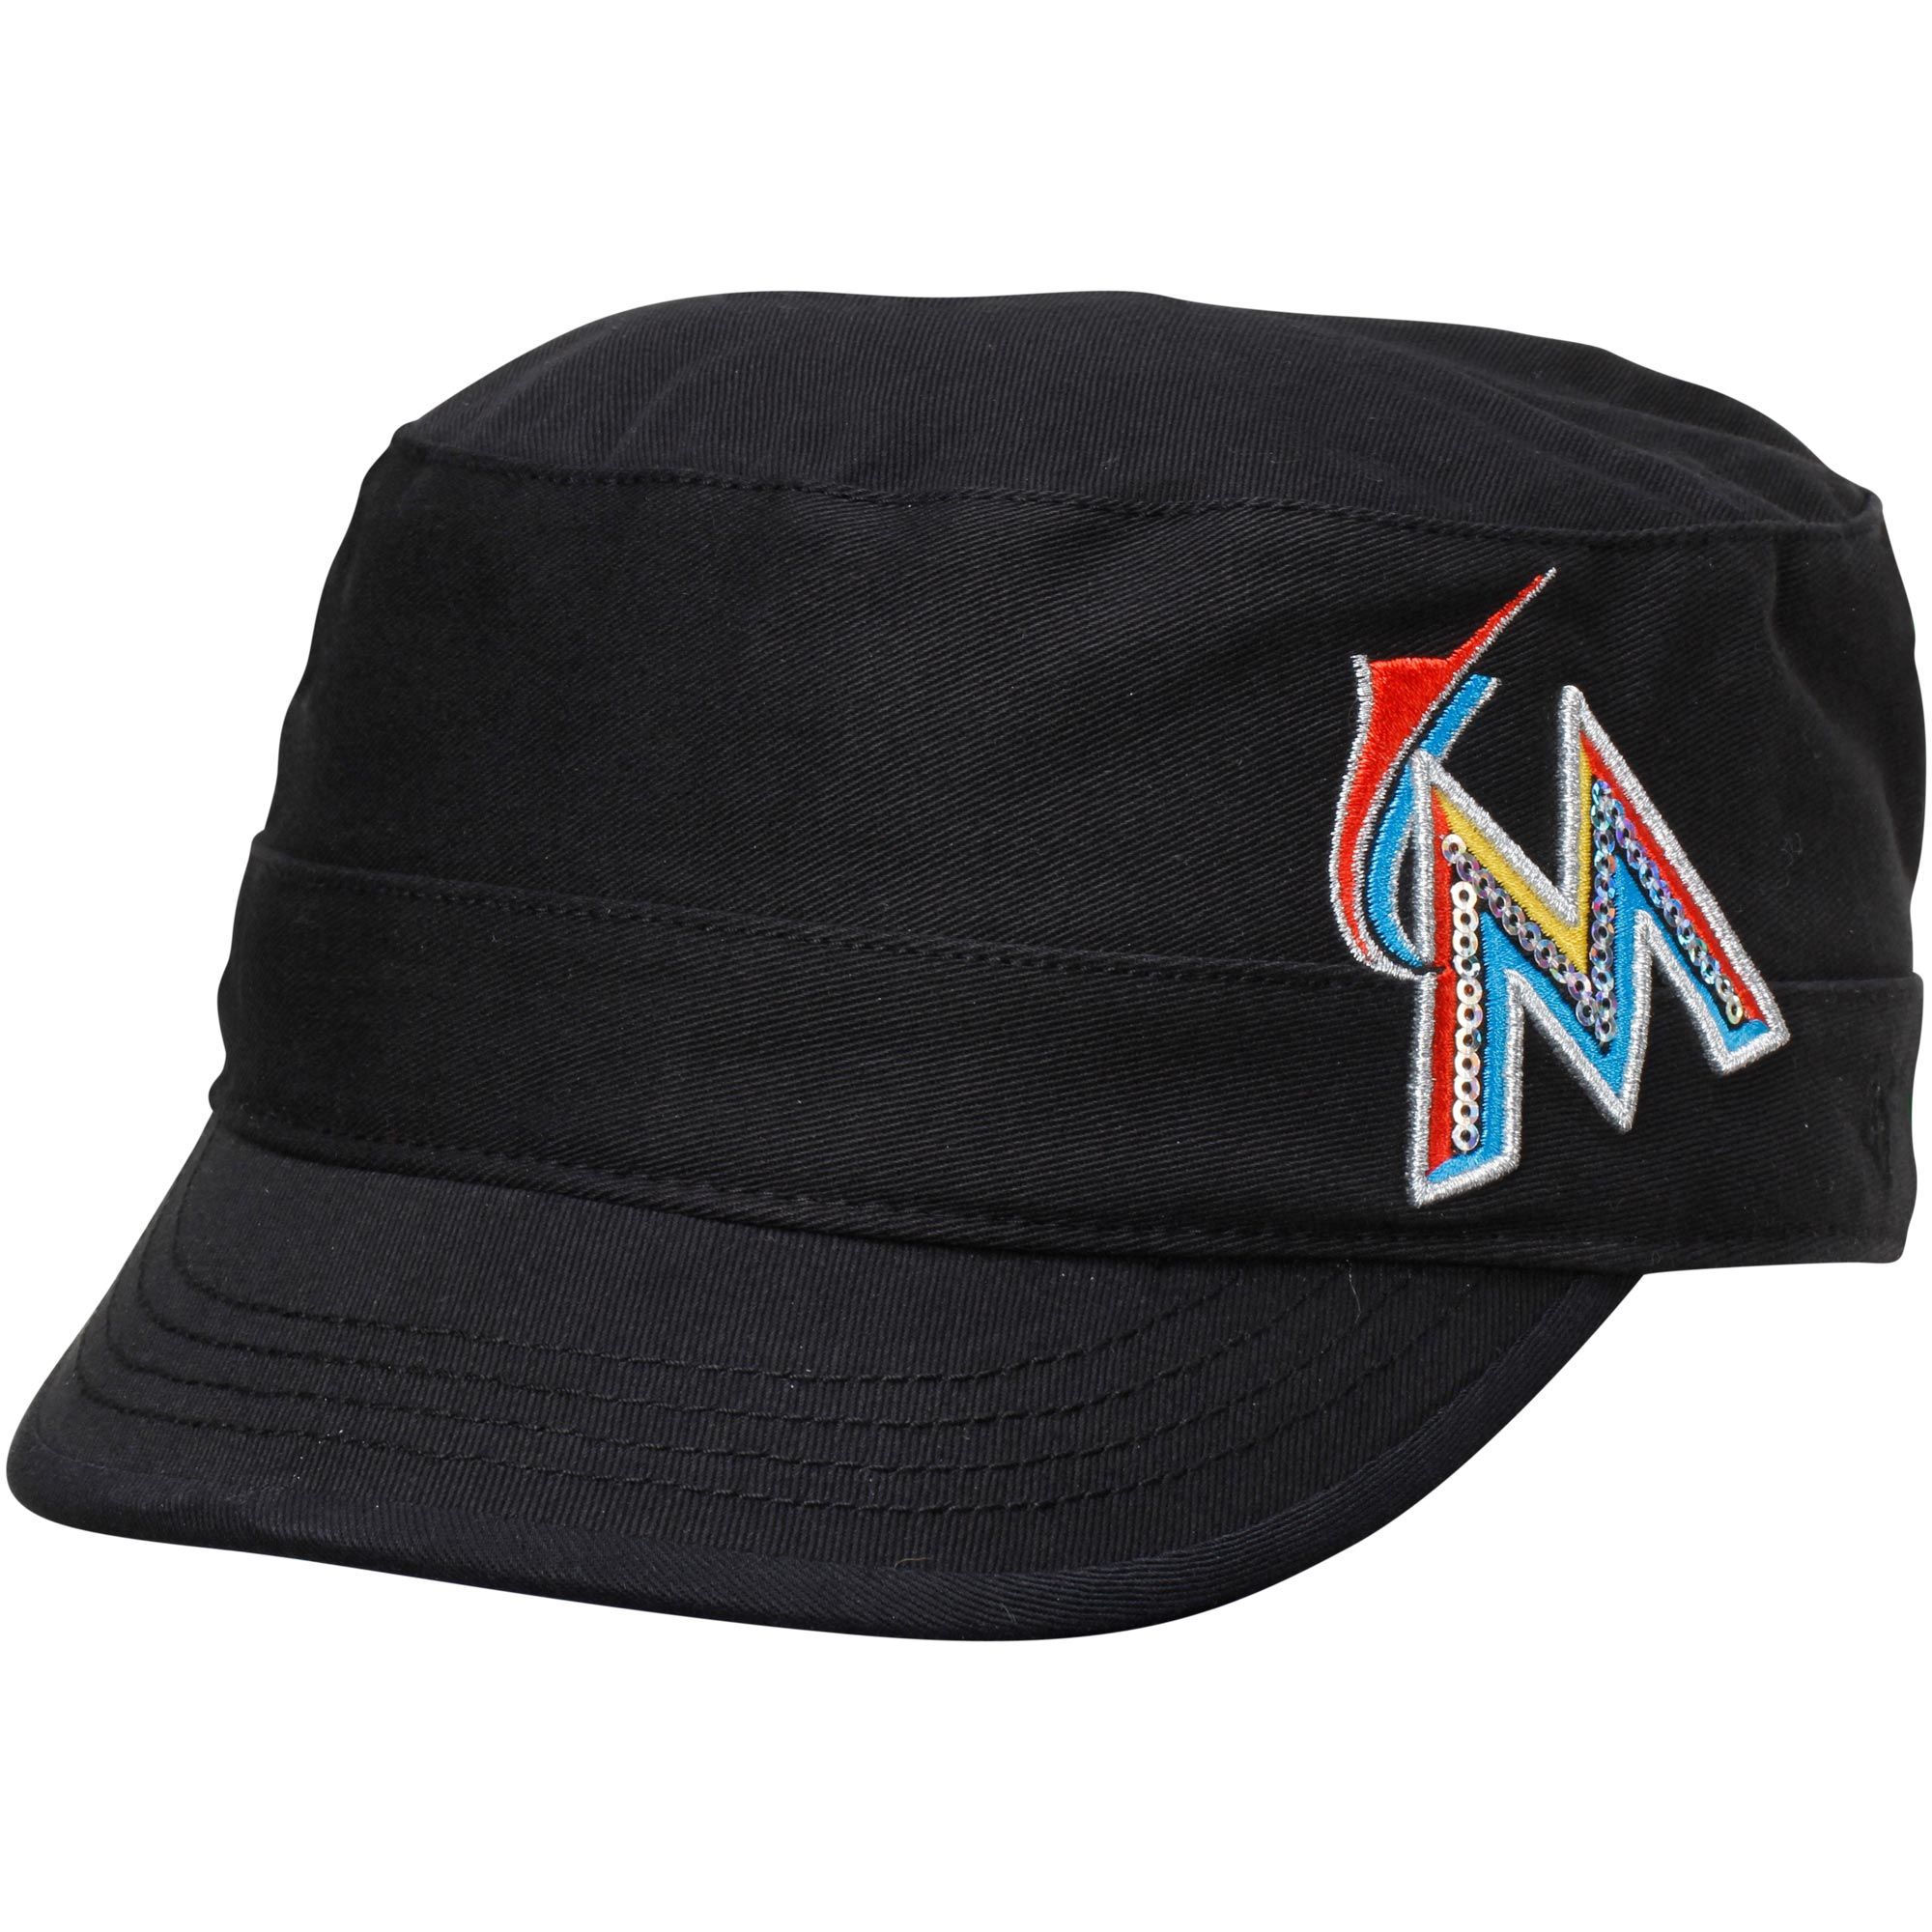 Miami Marlins '47 Women's Cabaret Cadet Hat - Black